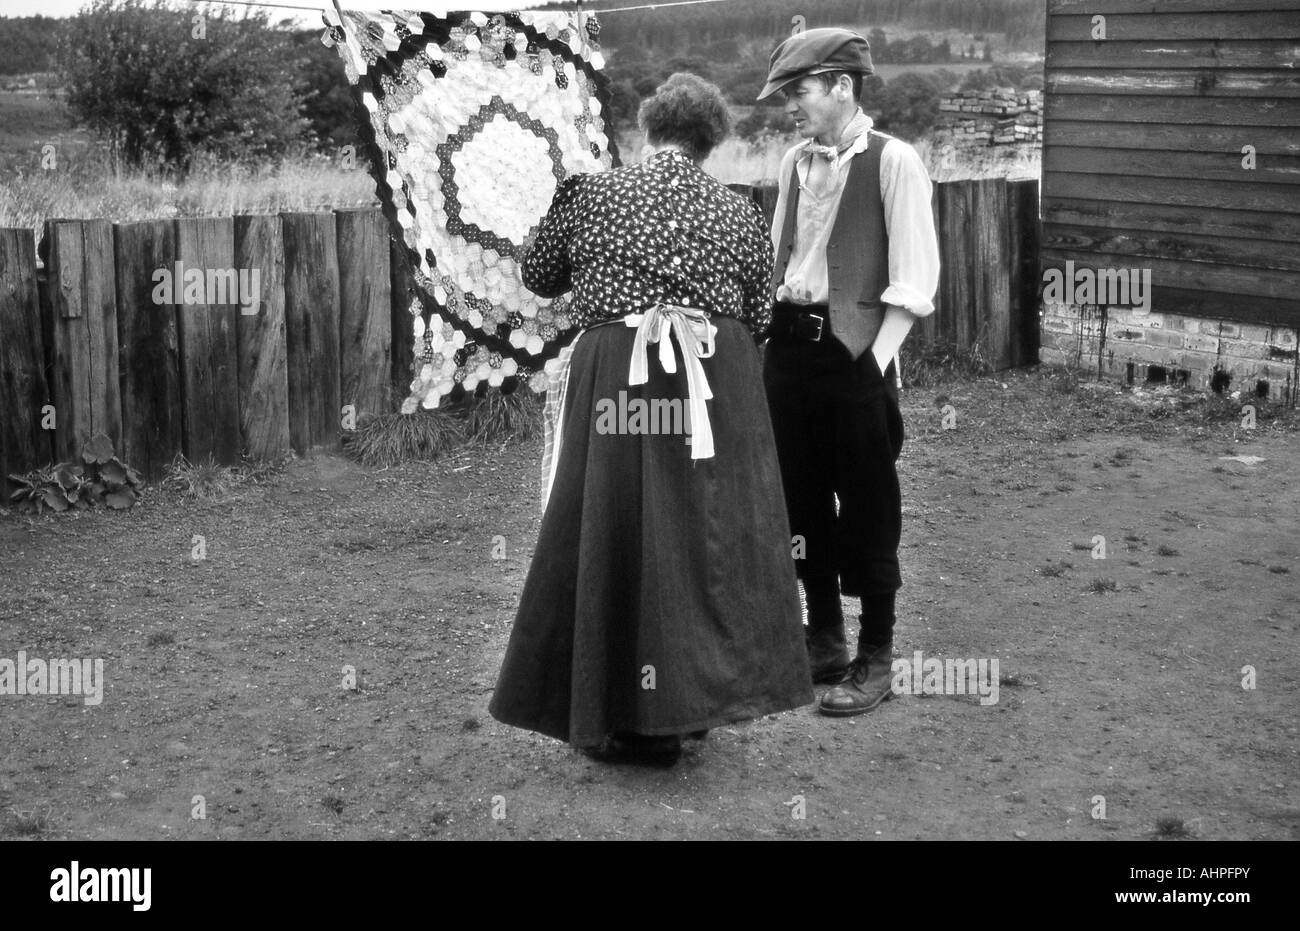 Man and woman dressed in period costume at the open air museum at Beamish. - Stock Image